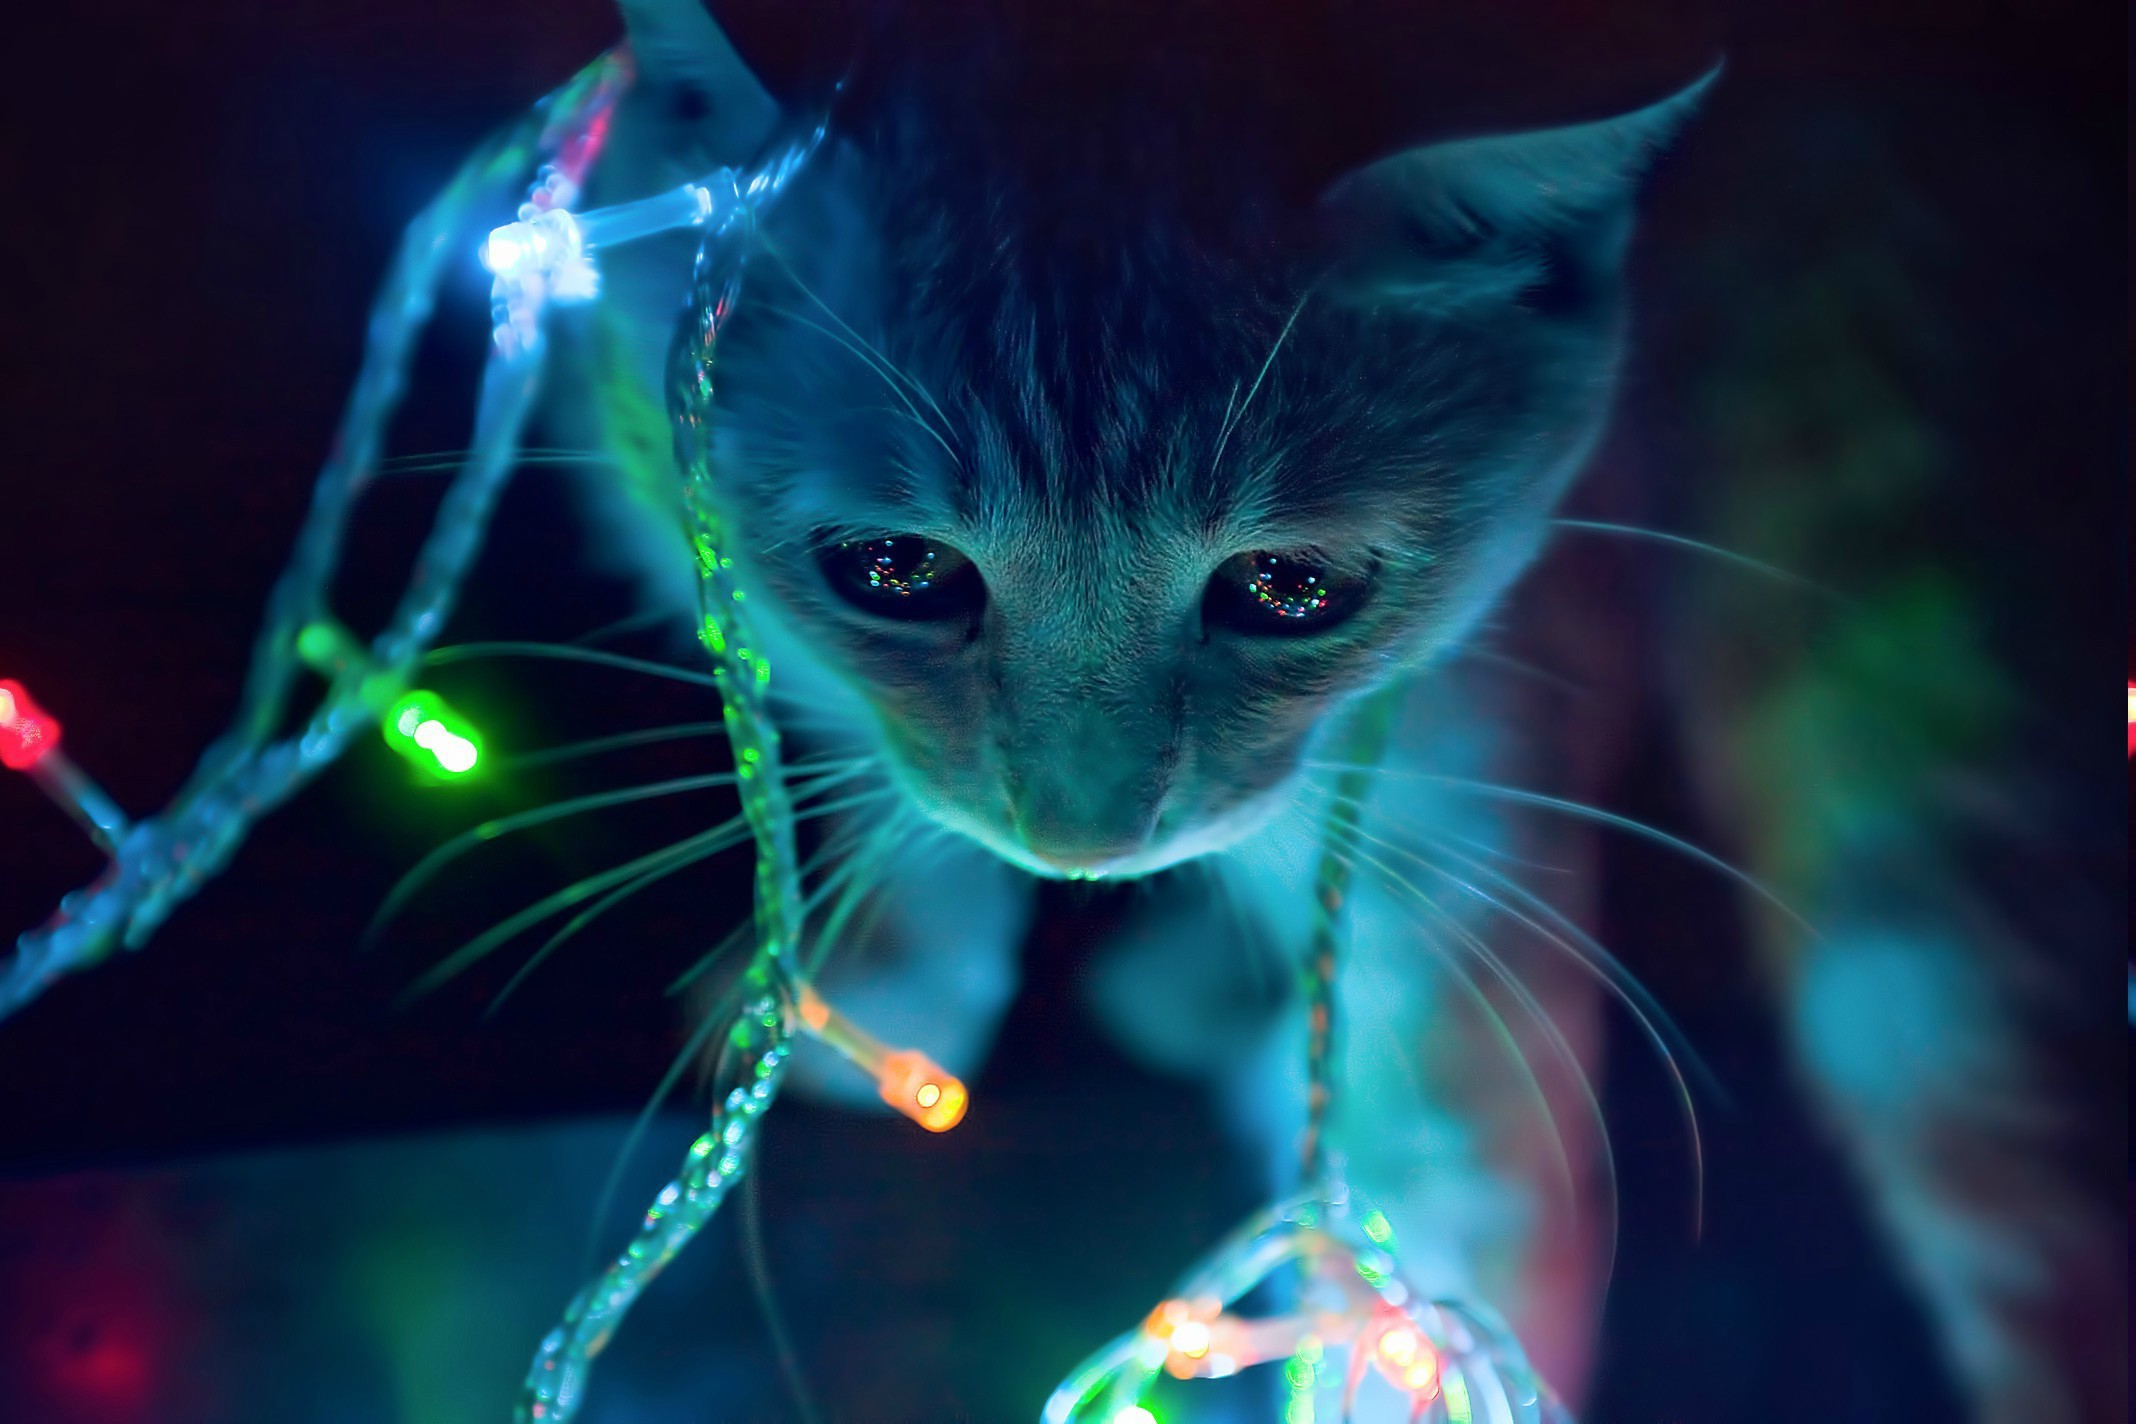 Gif As Wallpaper Iphone Christmas Lights Wallpaper 183 ① Download Free Cool Full Hd